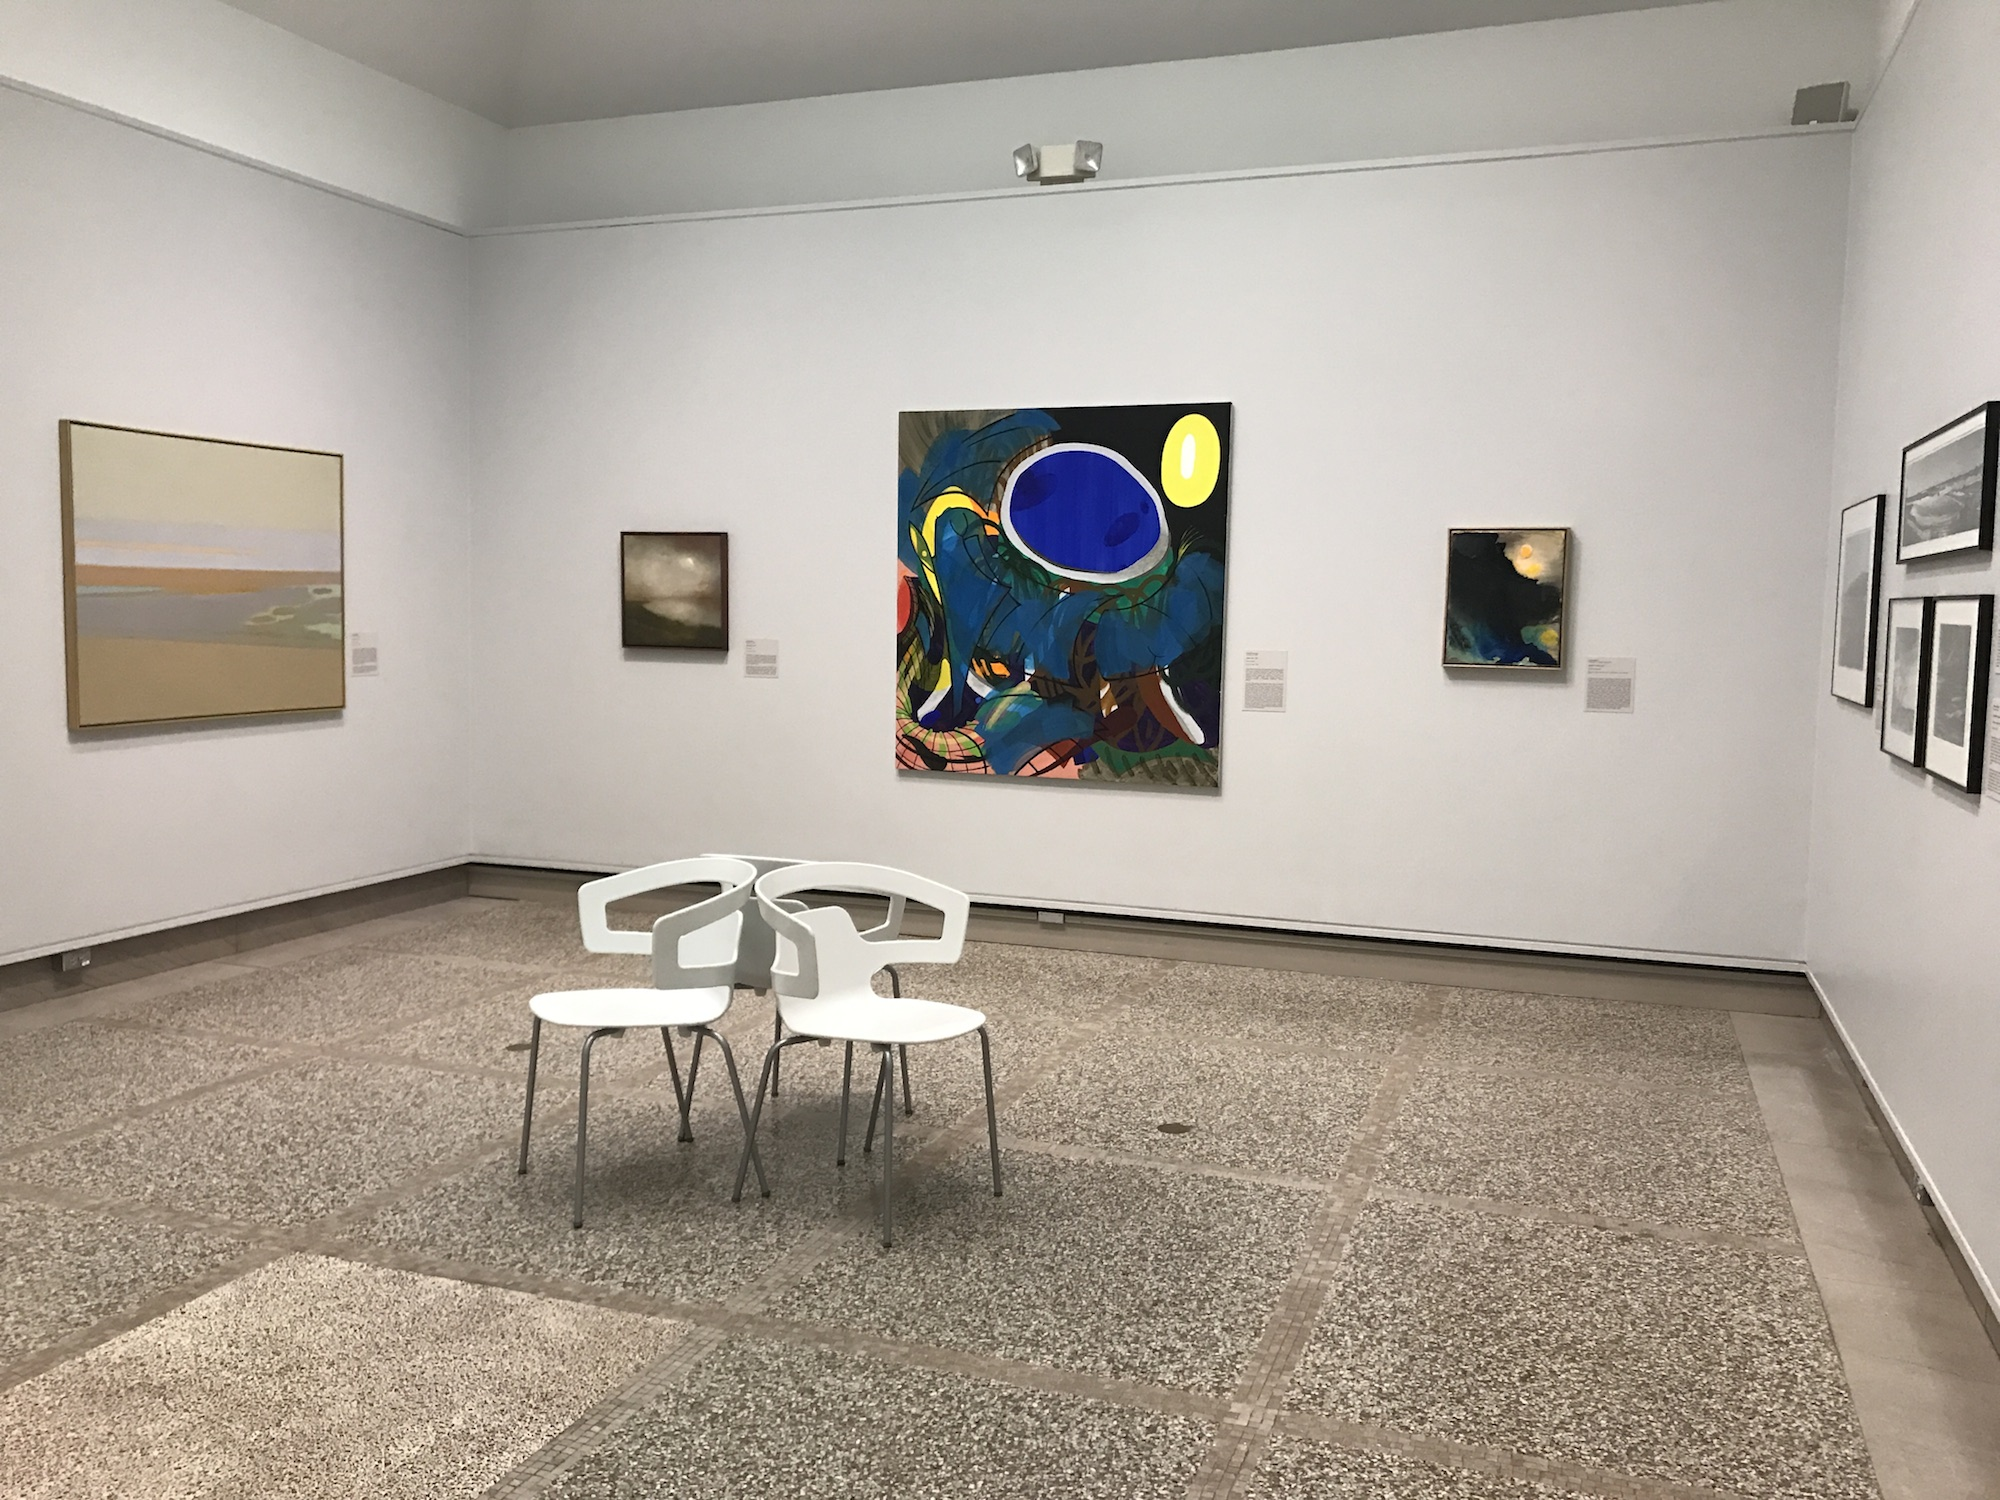 The final gallery in the exhibit, which includes more works in the modernist and abstract styles. image: gianna barberia